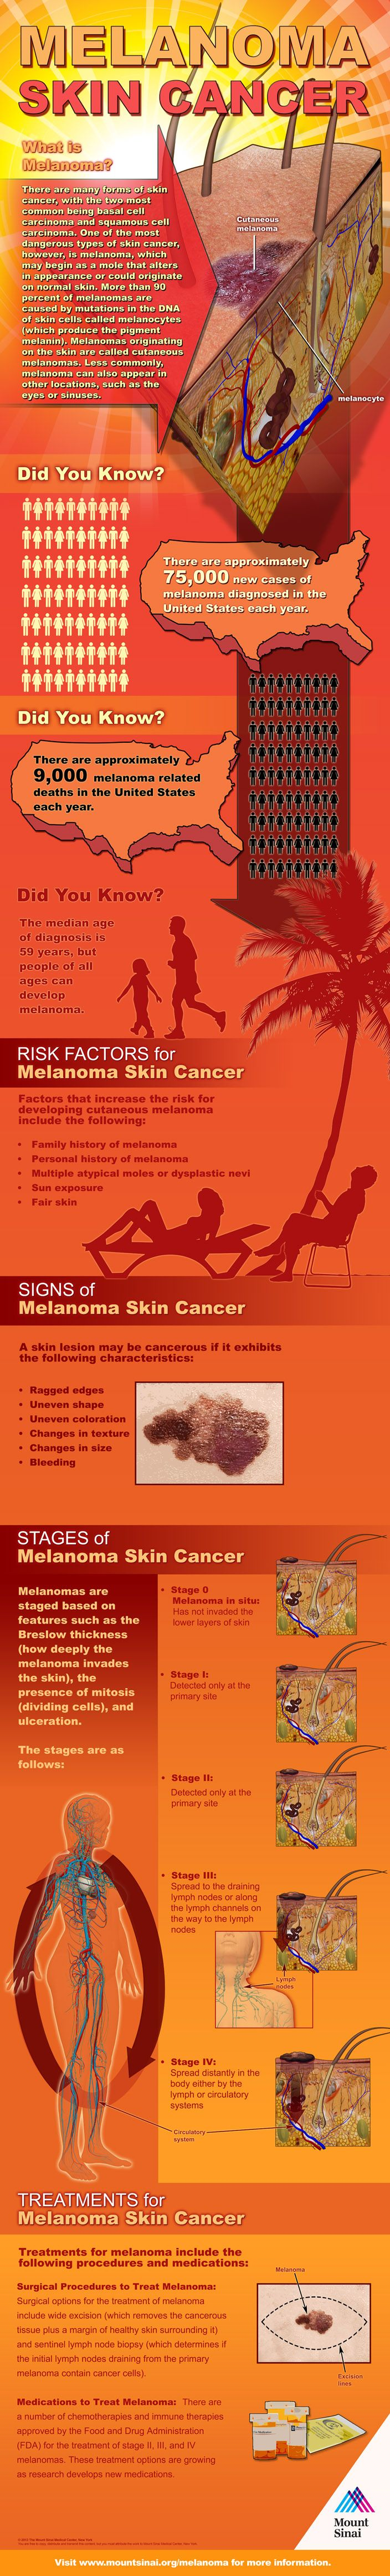 Melanoma Infographic from Mount Sinai http://www.mountsinai.org/patient-care/service-areas/cancer/cancer-services/skin-cancer/infographic/skincancerinfo